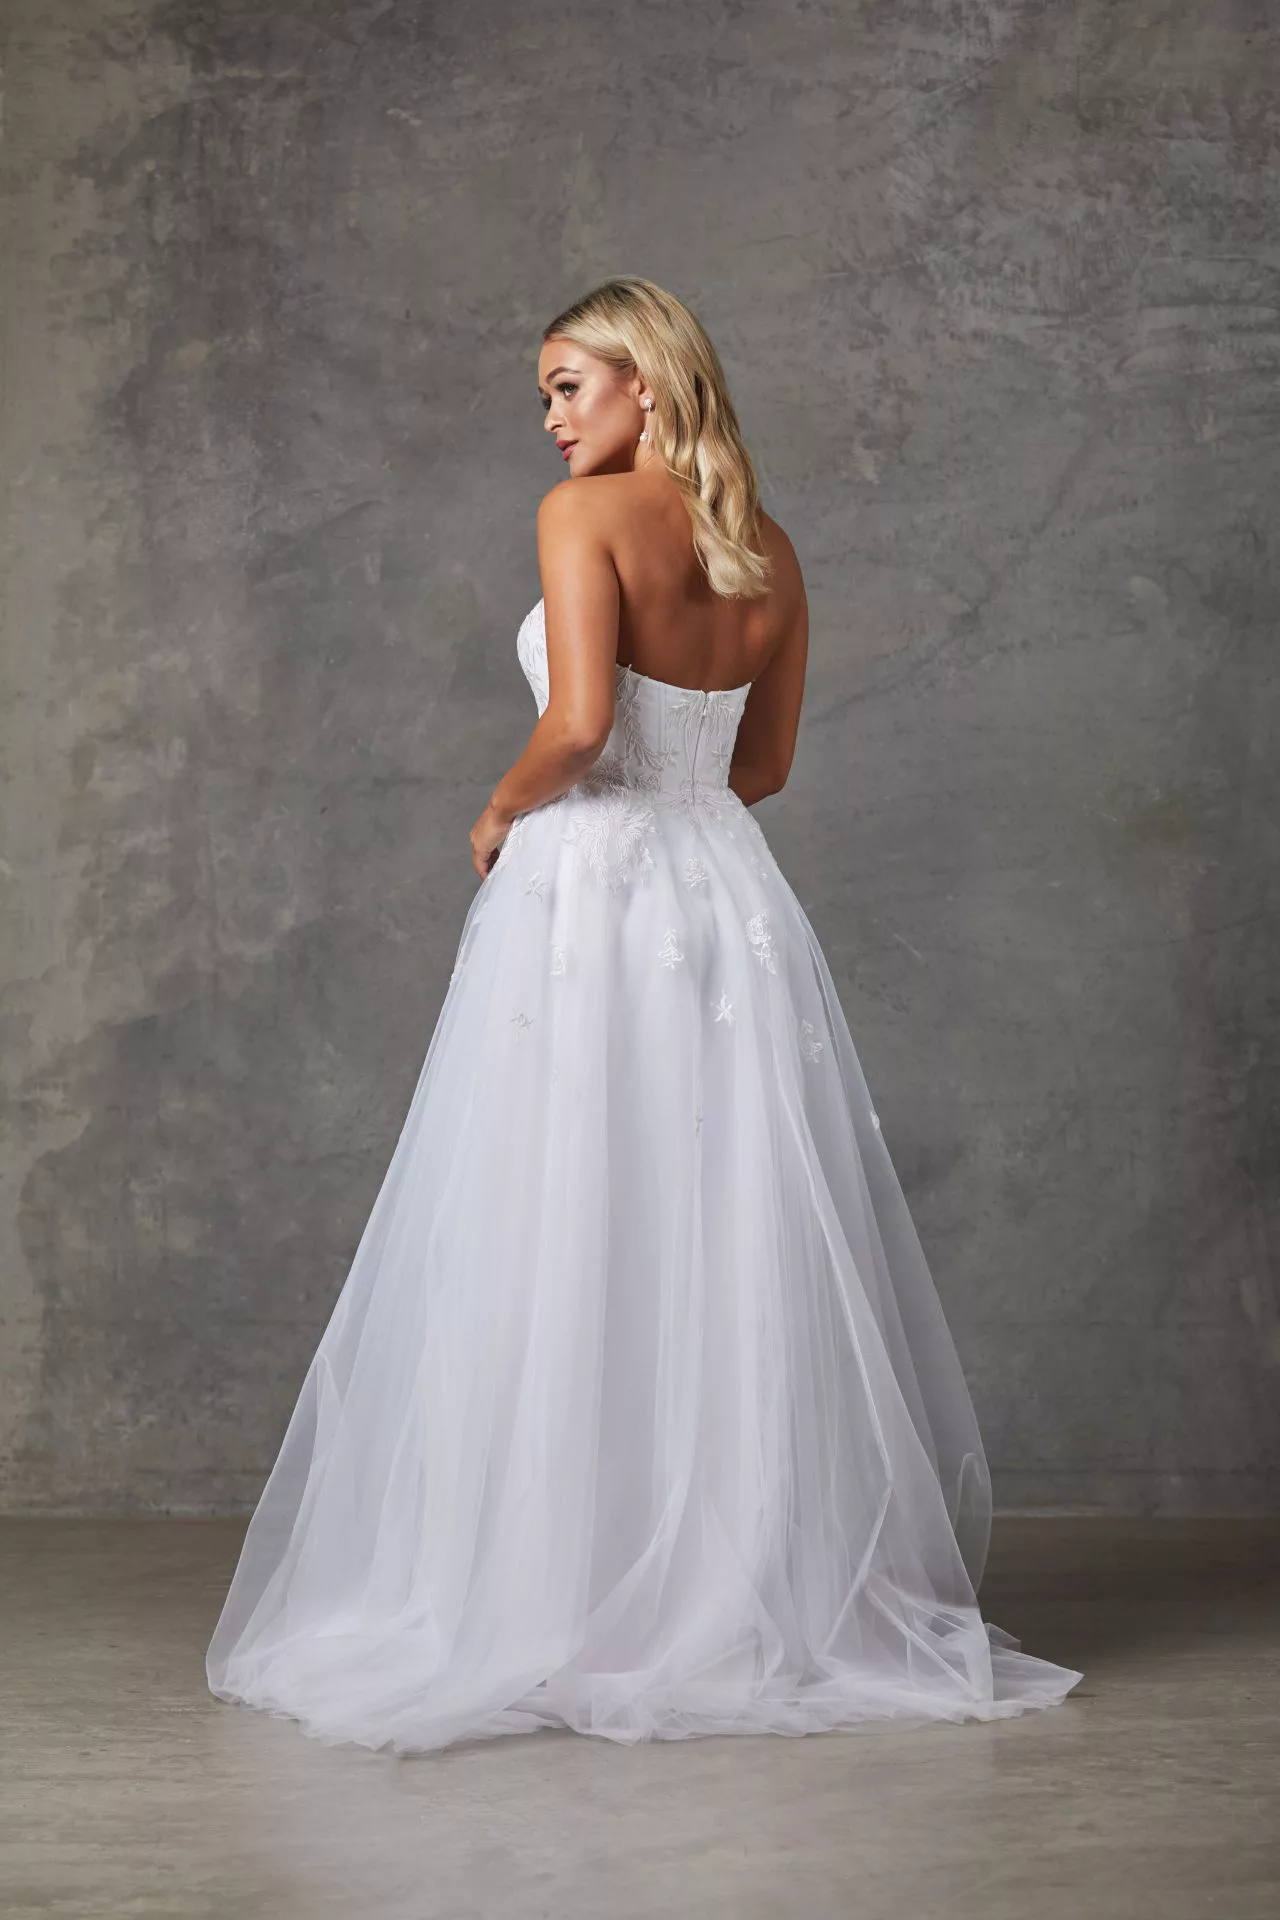 Louisa Wedding Dress by Tania Olsen - White